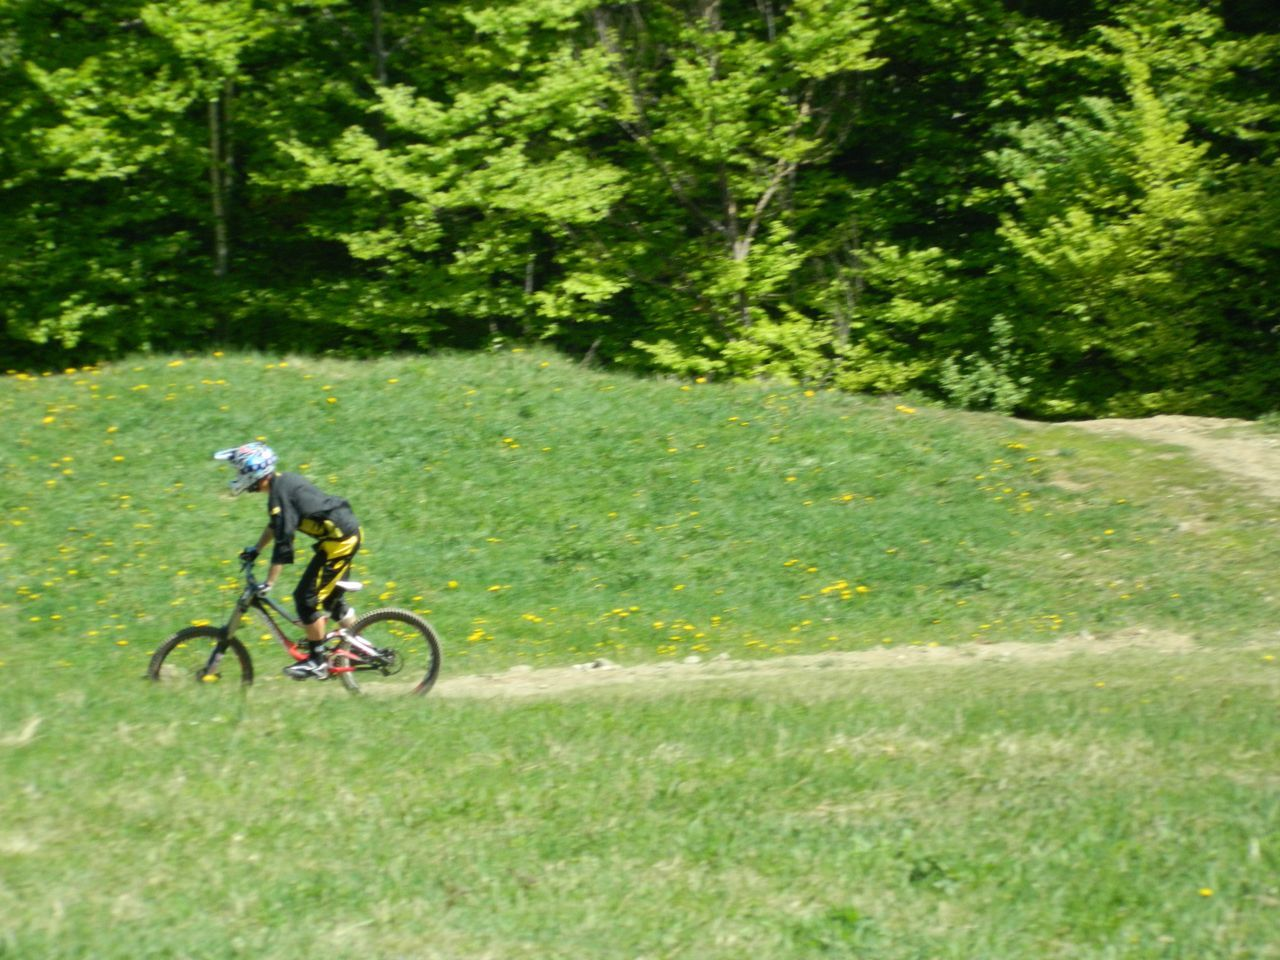 bicycle, speed, grass, cycling, motion, activity, adventure, sport, helmet, outdoors, green color, one person, headwear, day, sports clothing, sports race, full length, nature, mountain bike, men, one man only, competition, cycling helmet, tree, people, adult, sportsman, athlete, only men